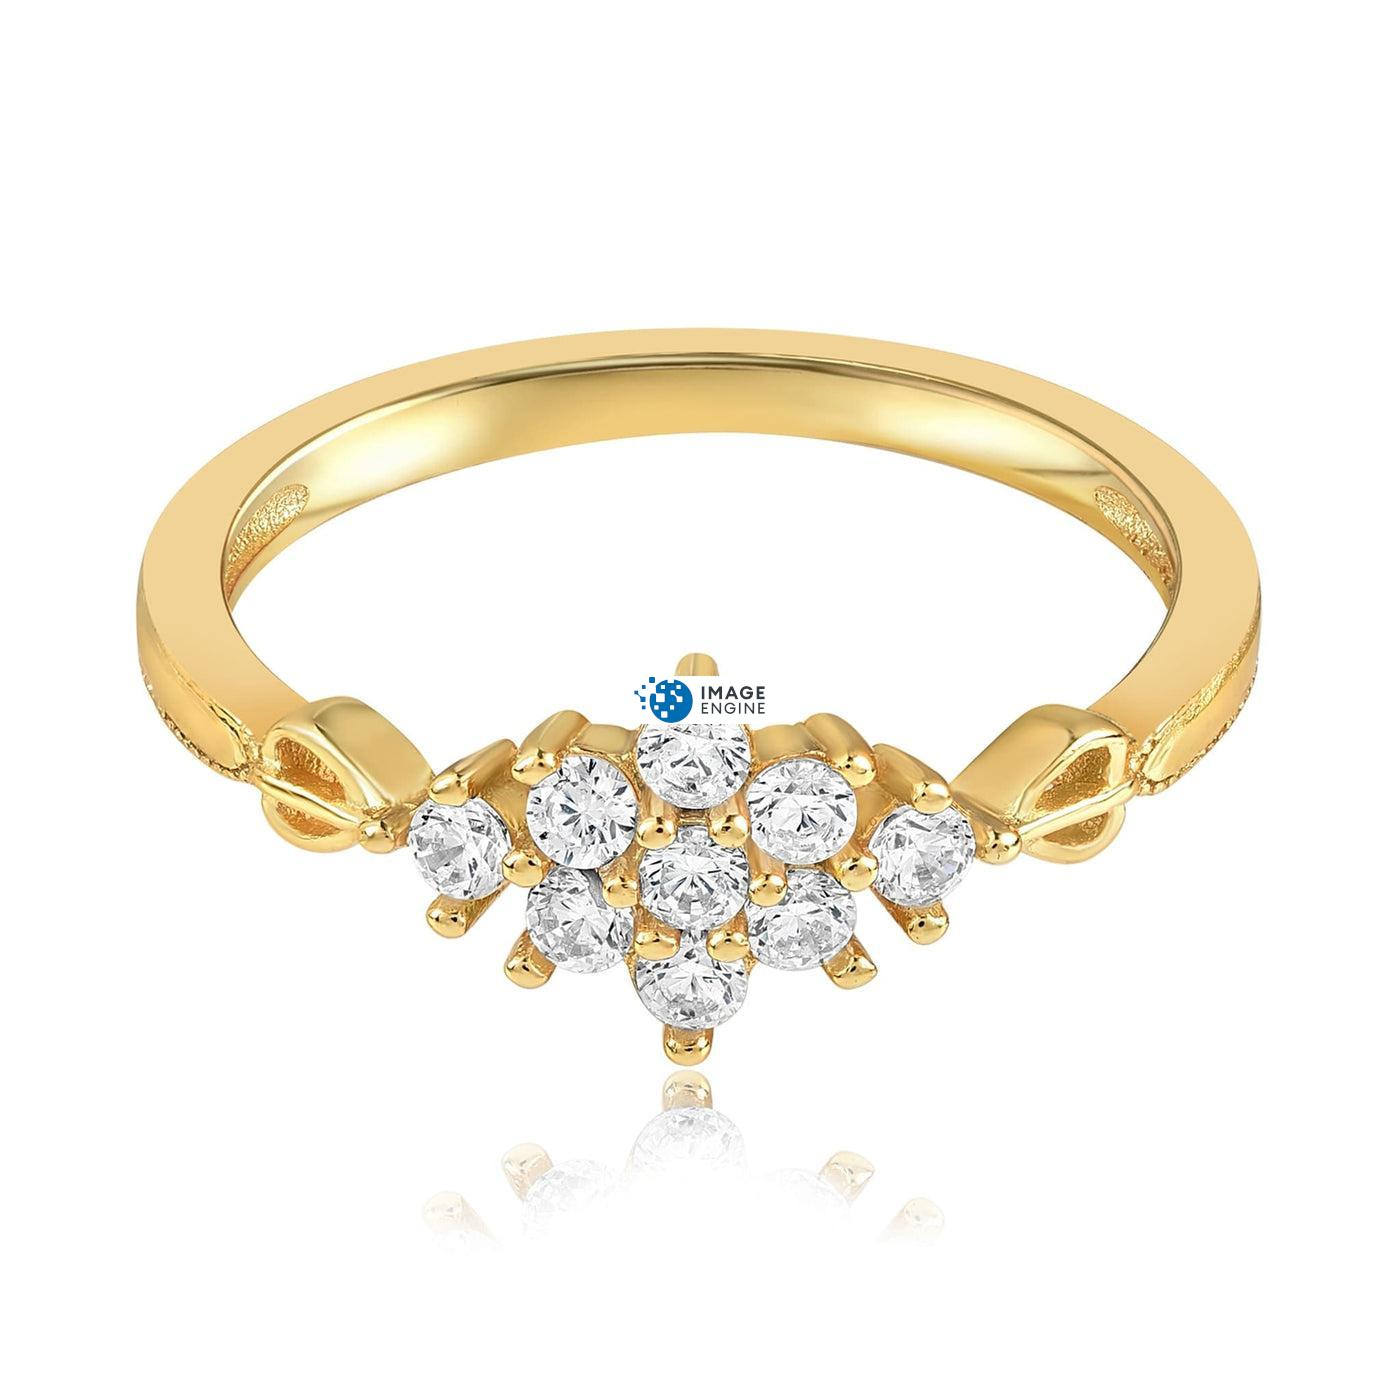 Sarah Snowflake Dainty Ring - Front View Facing Down - 18K Yellow Gold Vermeil